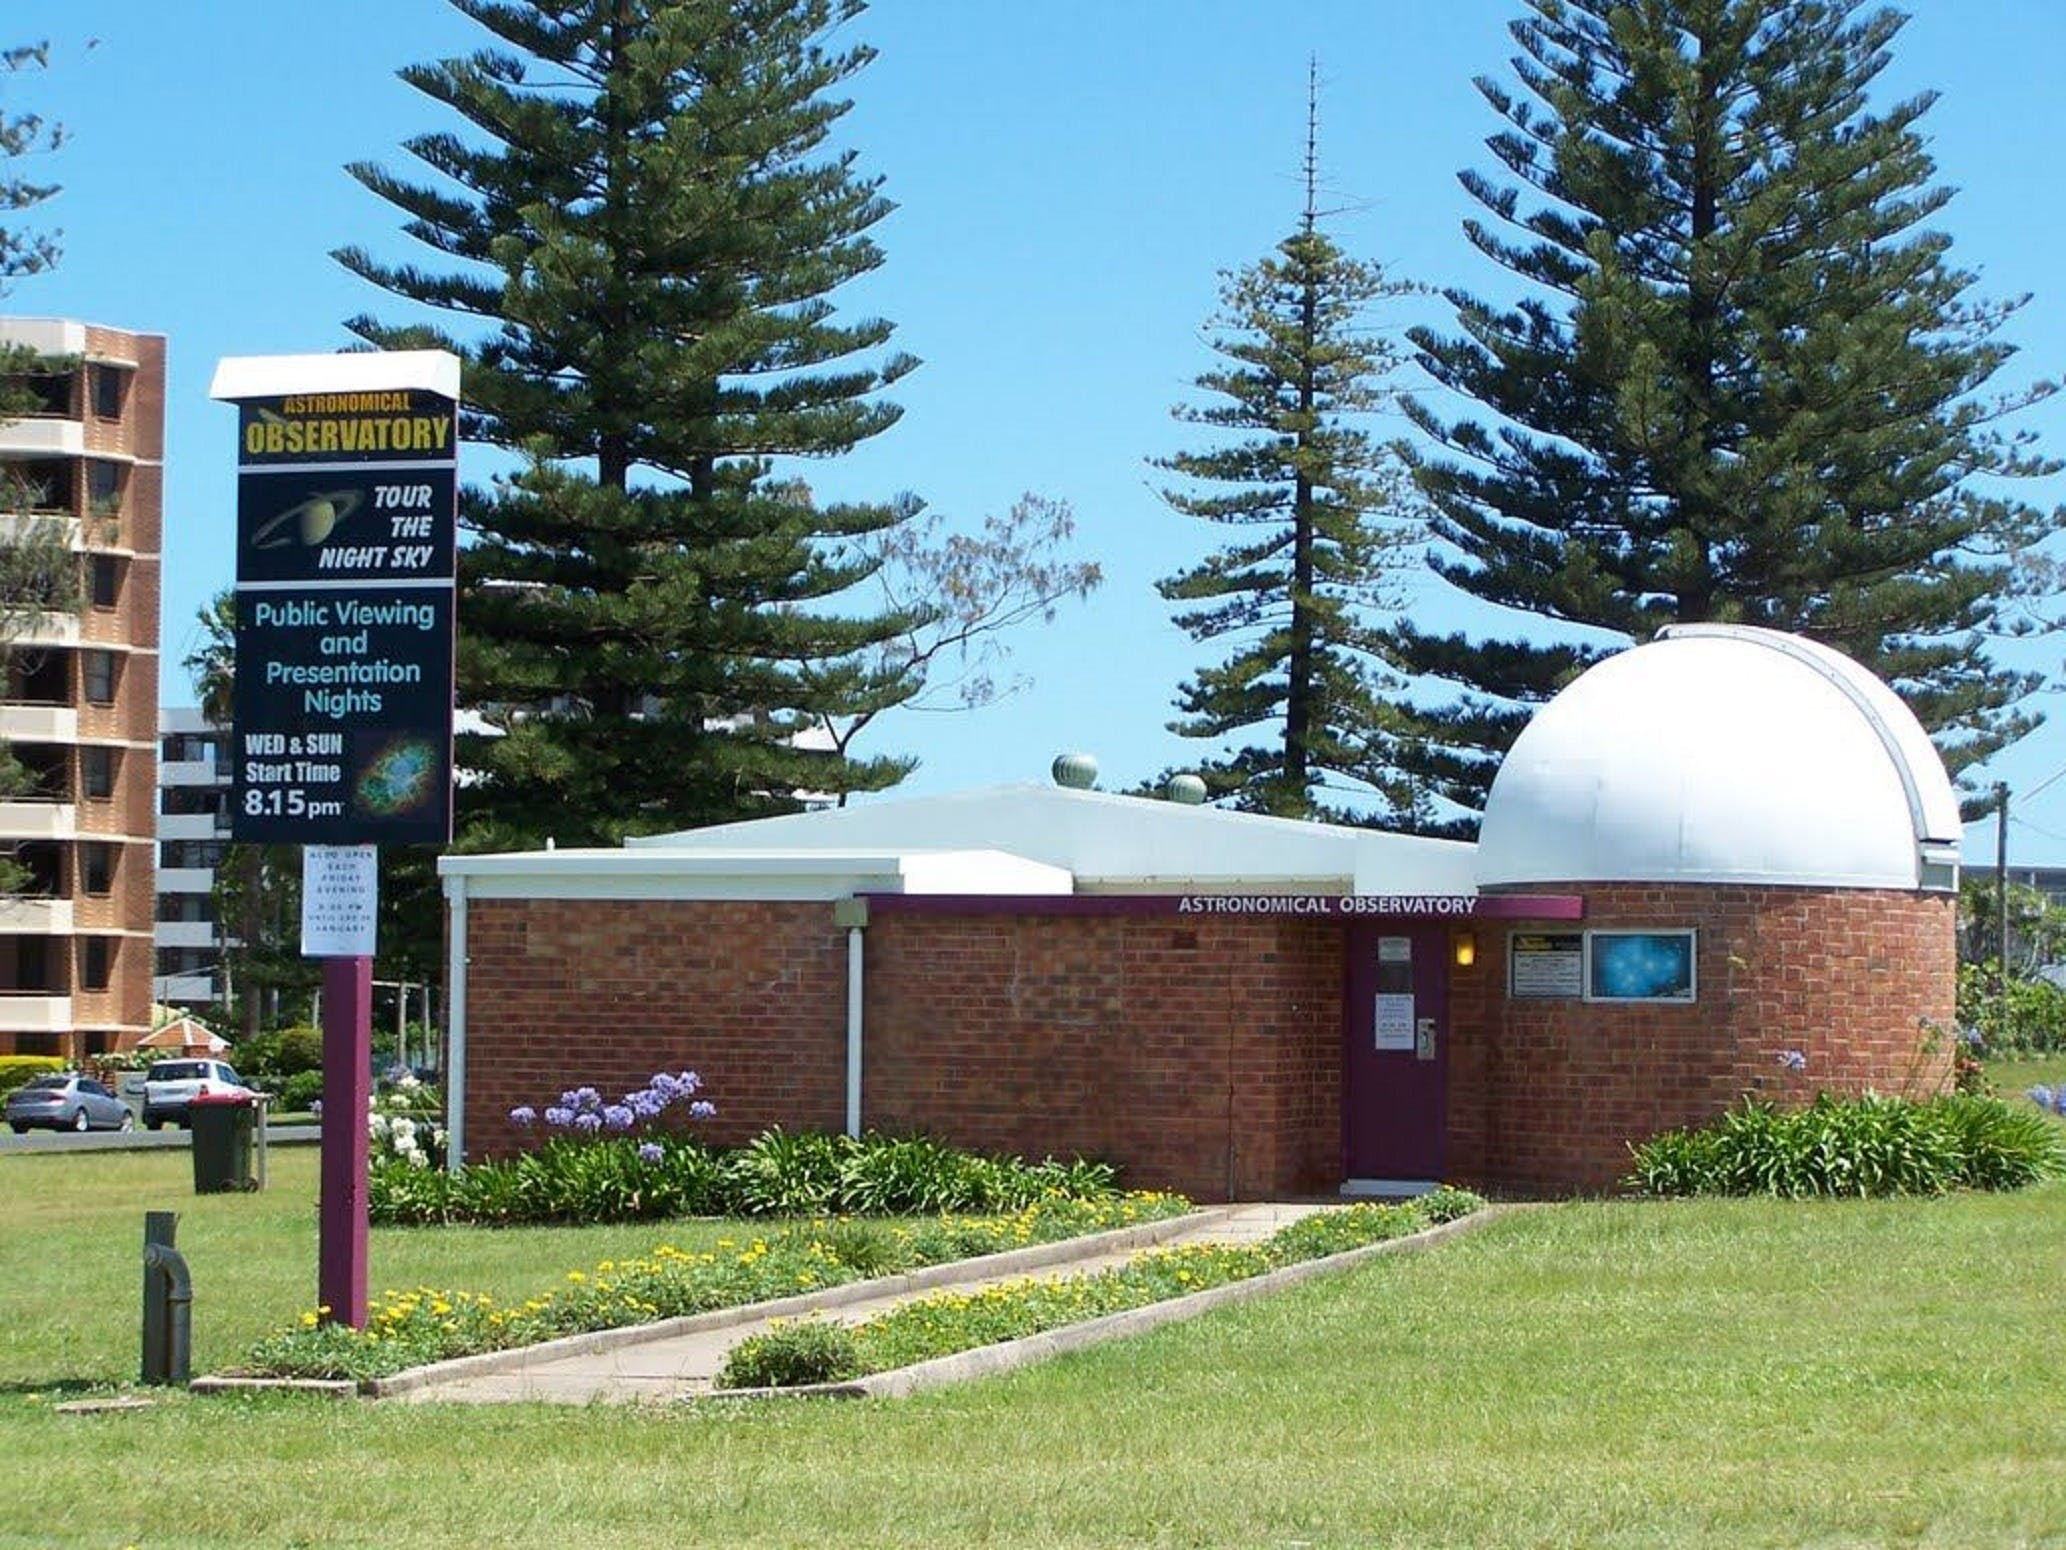 Port Macquarie Astronomical Observatory - Accommodation Noosa